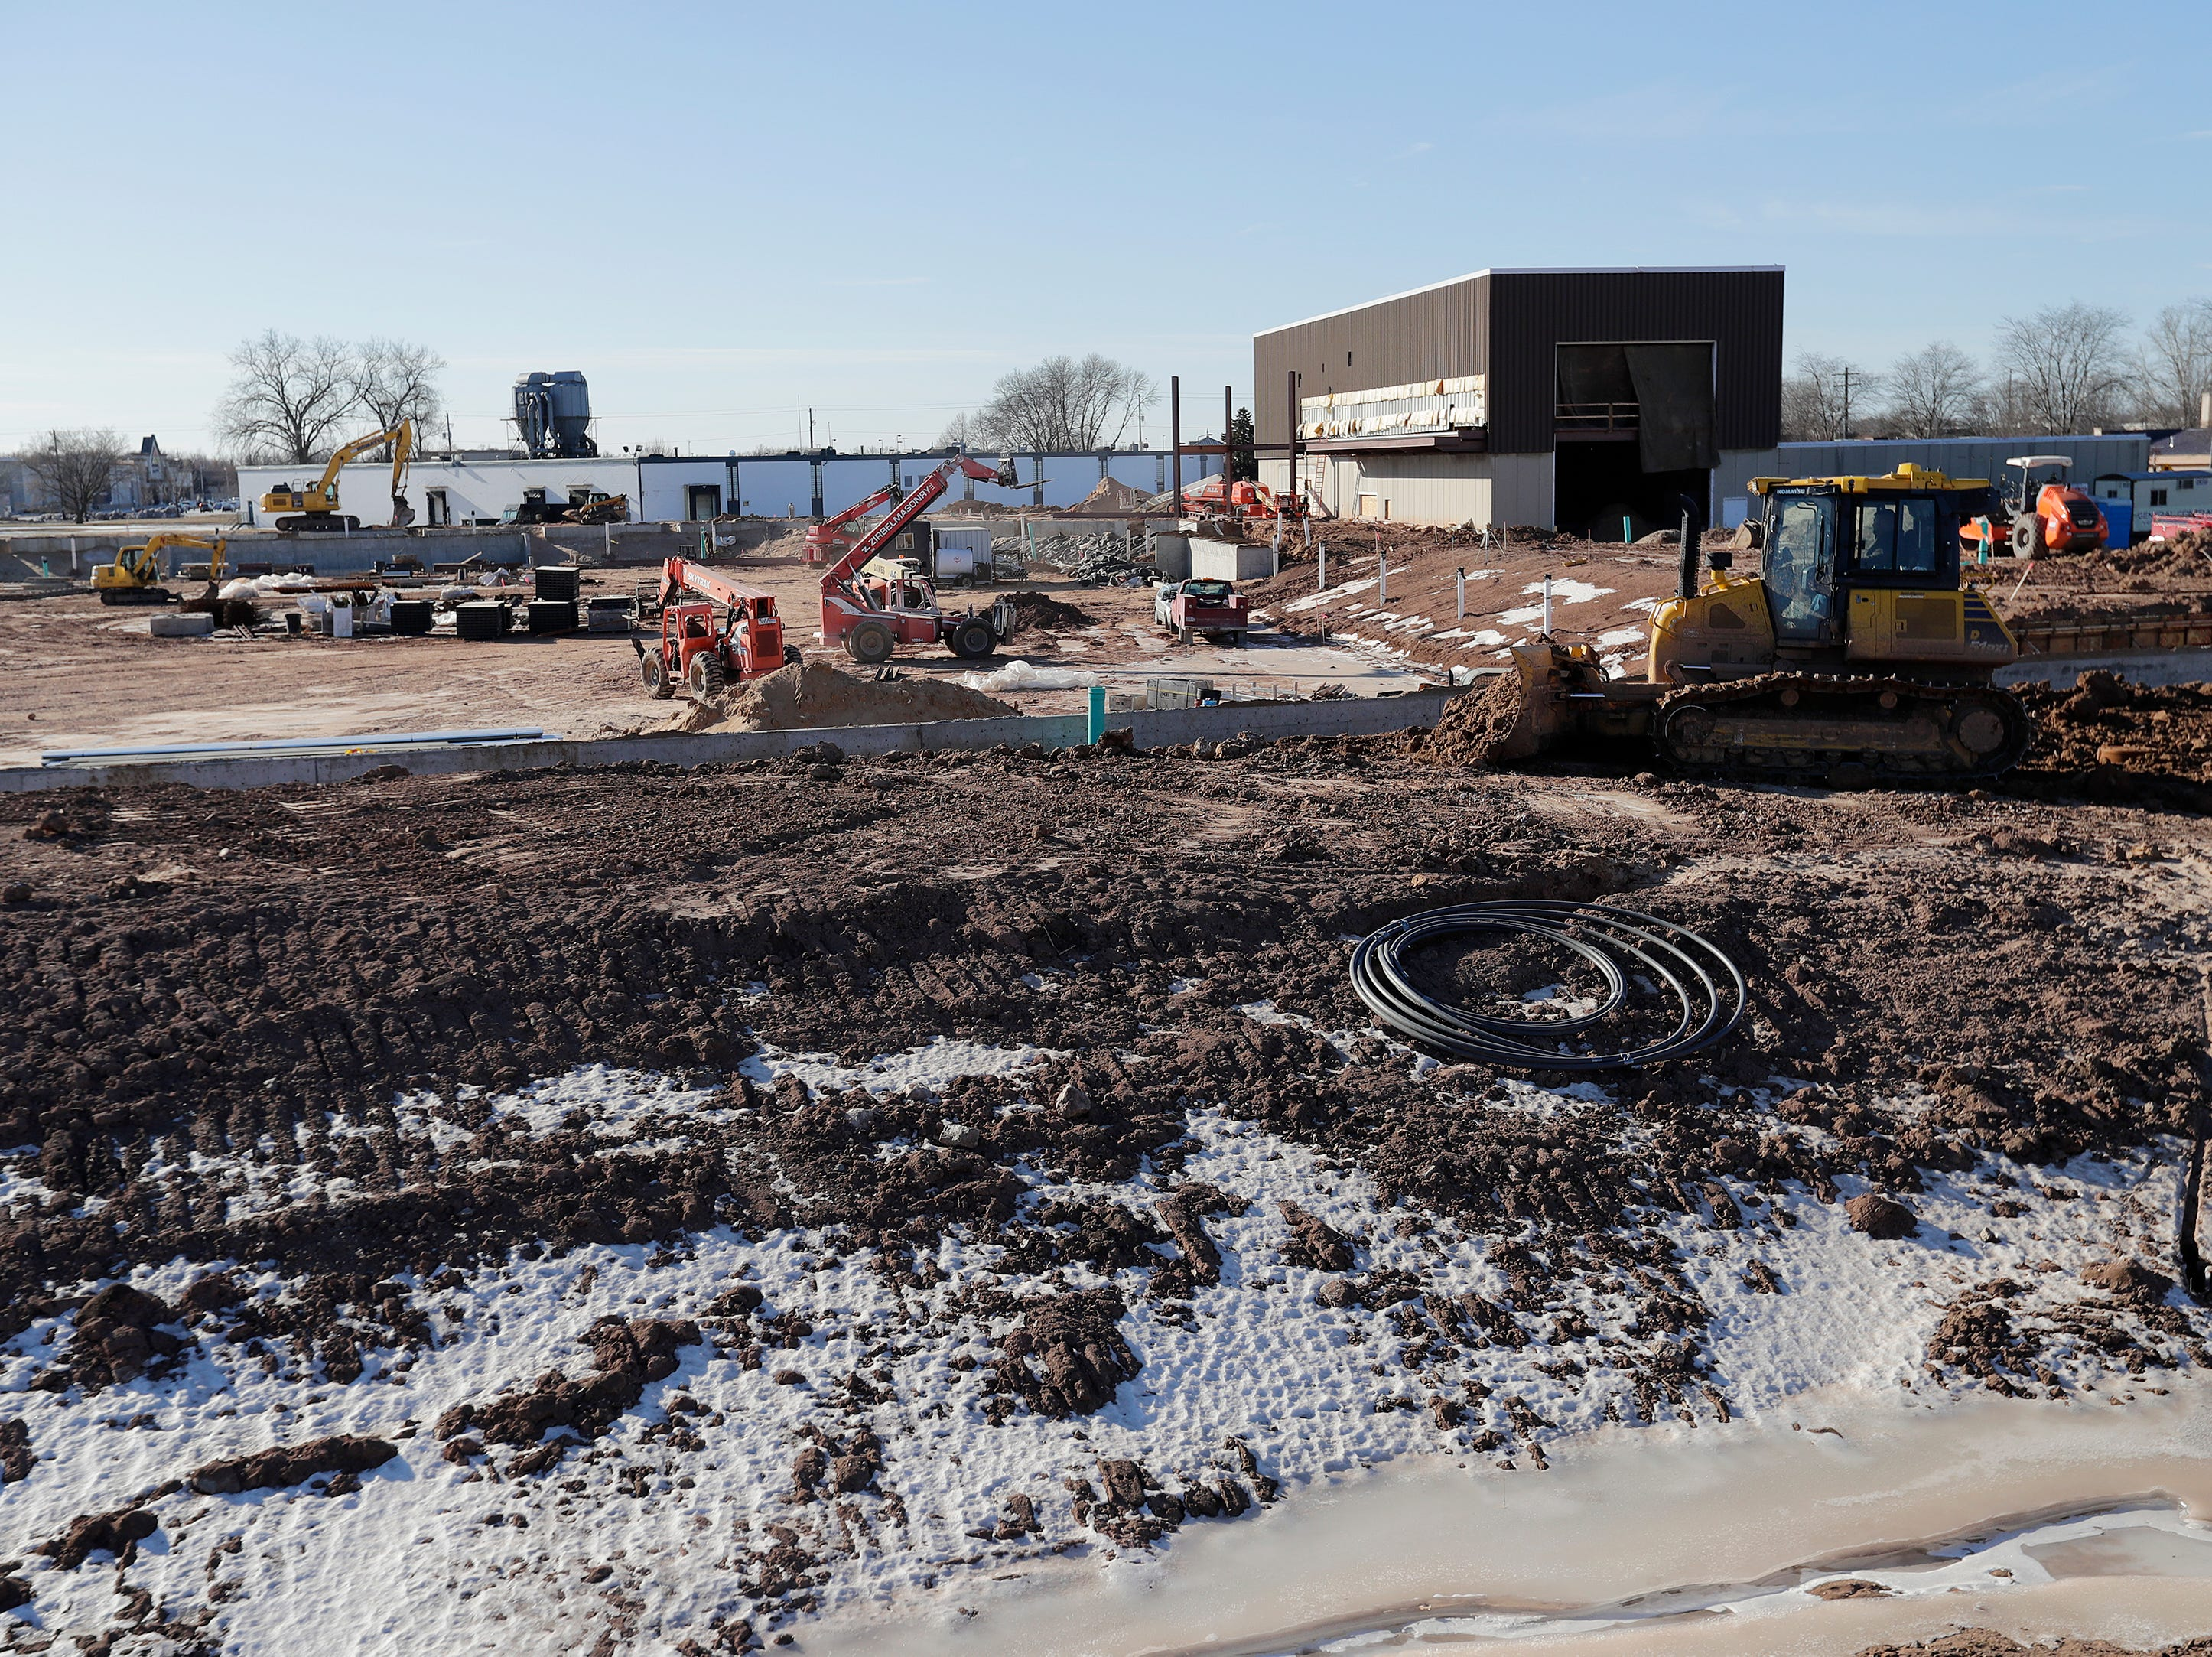 Construction for Capital Credit Union Park is shown from beyond the left field wall on Wednesday, January 16, 2019 in Ashwaubenon, Wis. The stadium is set to open this spring and will host the Green Bay Booyah baseball team in the Northwoods League and a United Soccer Leagues League 2 team.